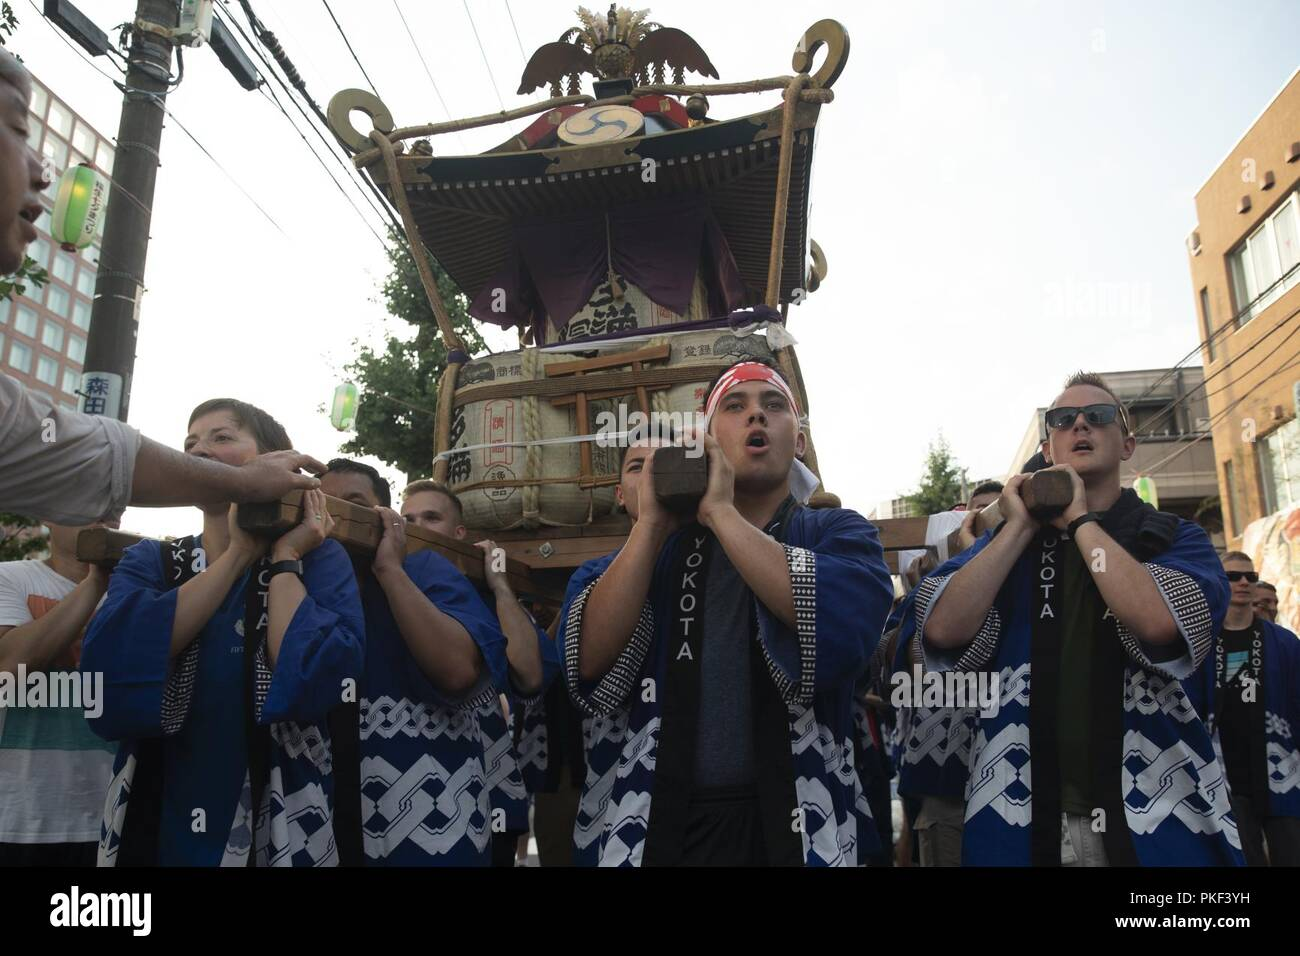 Members from Yokota Air Base carry the 374th Airlift Wing's official mikoshi during the 68th Annual Fussa Tanabata Festival at Fussa City, Japan, Aug. 3, 2018. More than 70 volunteers from Yokota carried the mikoshi during this year's festival. Yokota Airmen have attended the festival since 1958 and have actively participated in carrying a mikoshi since 1975. - Stock Image